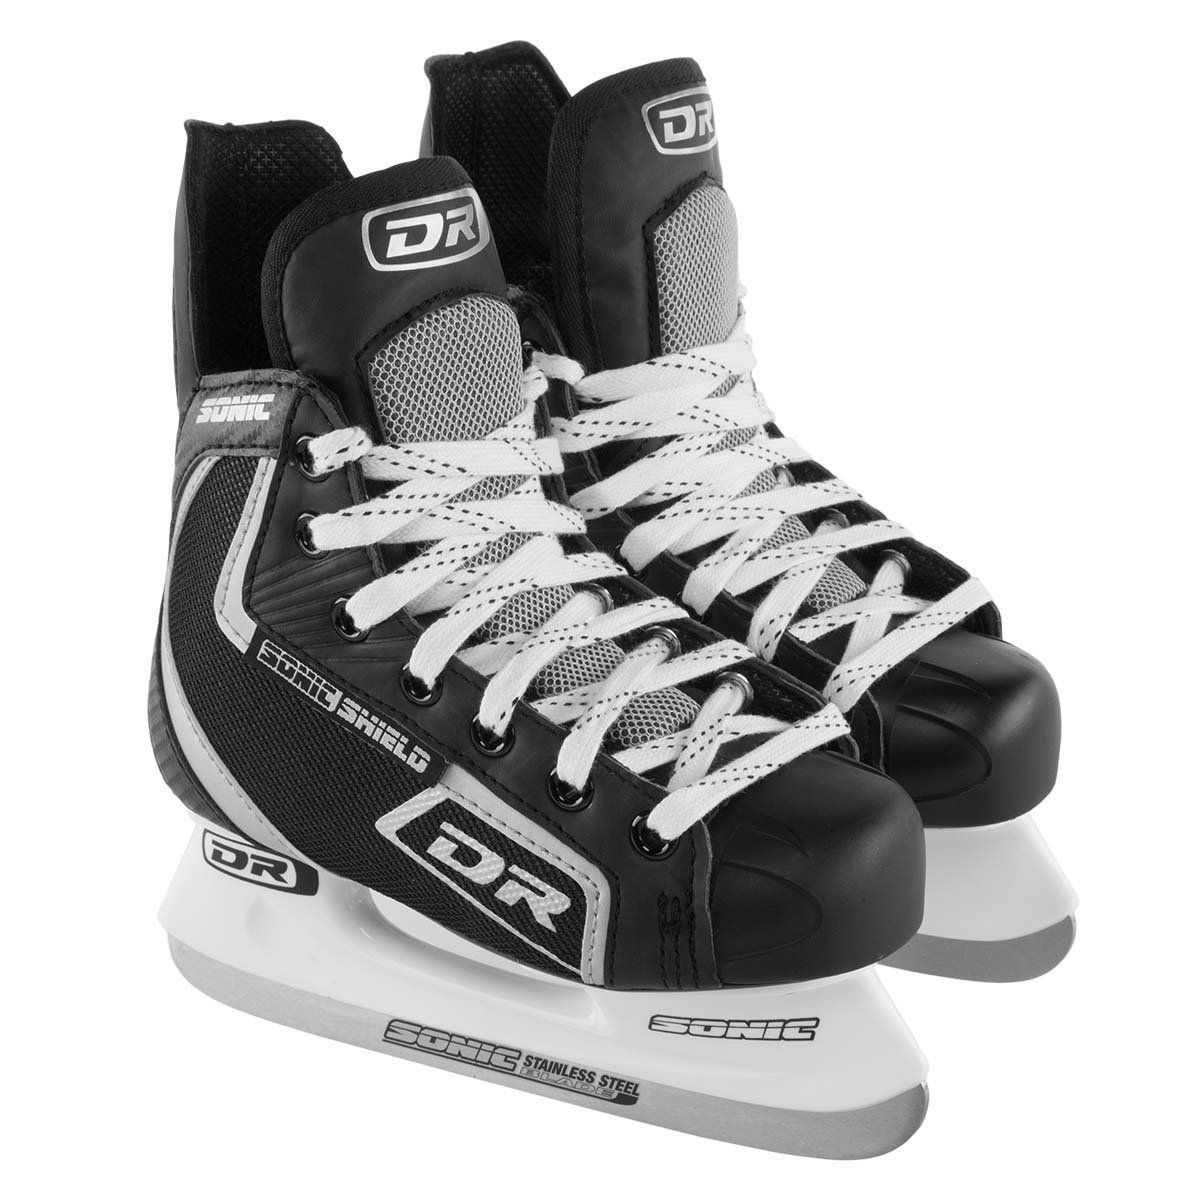 DR Sports 113 Men's Hockey Skate Black/Silver, Size 12 by Dr Dry